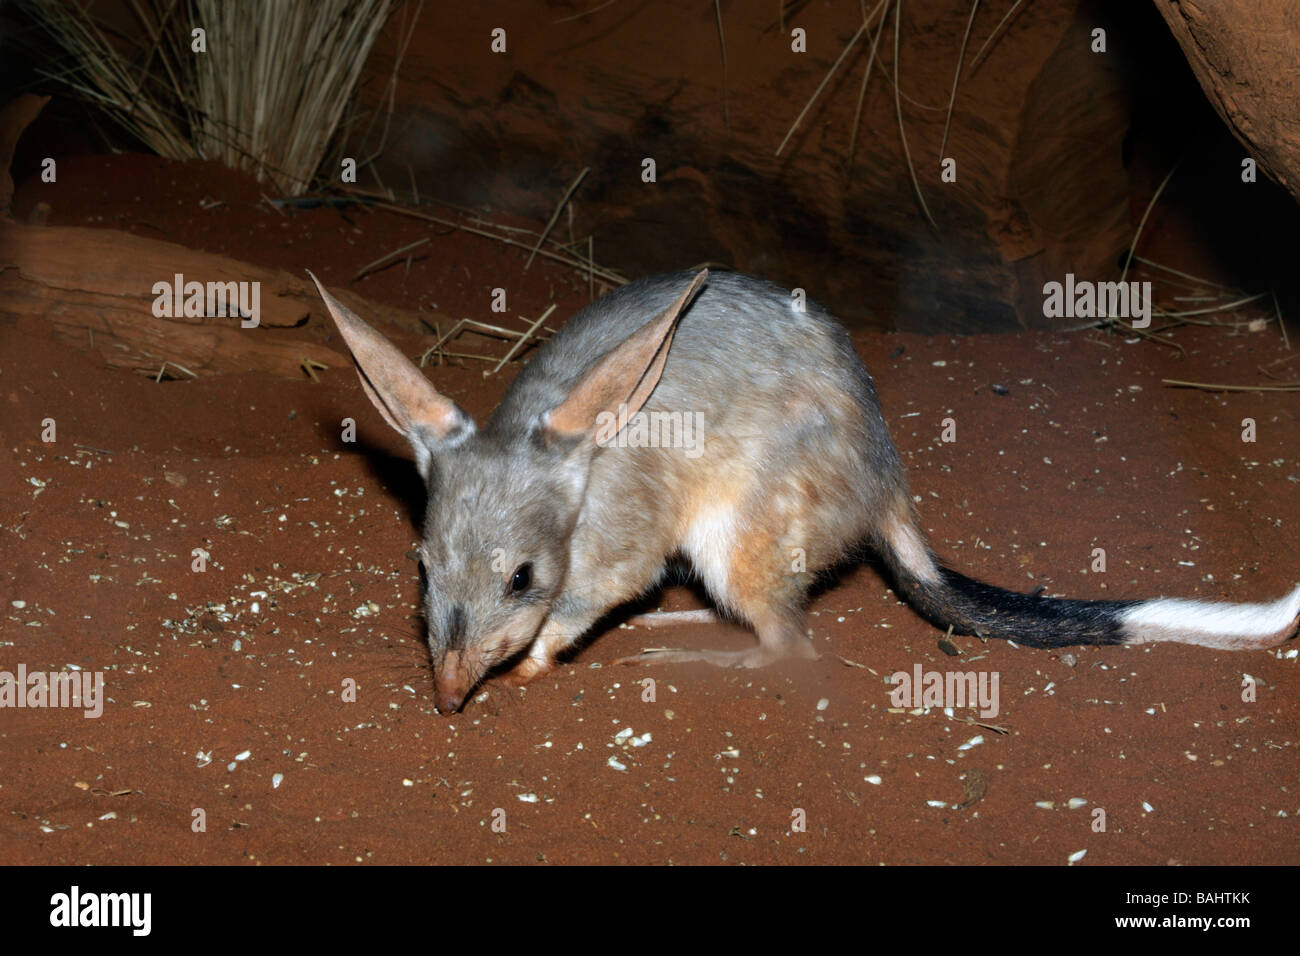 greater-bilby-macrotis-lagotis-scavenging-at-night-BAHTKK.jpg